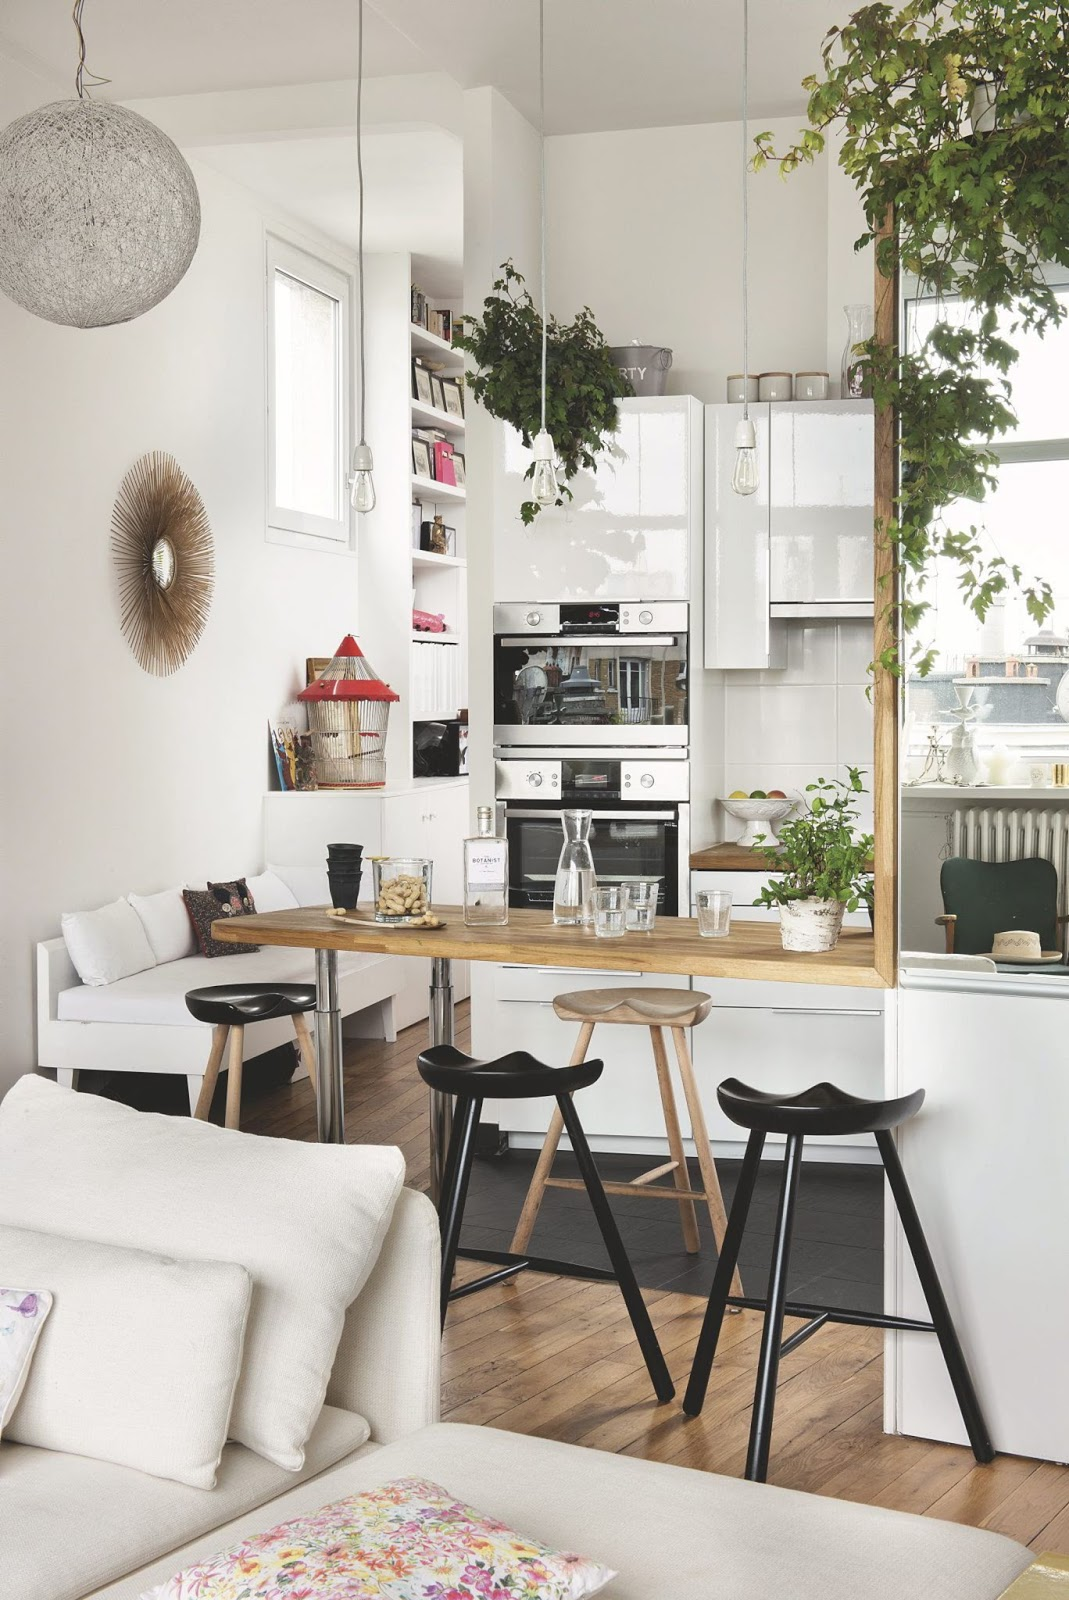 Cuisine Ouvert Decordemon An Apartment With Garden On The Roofs Of Paris